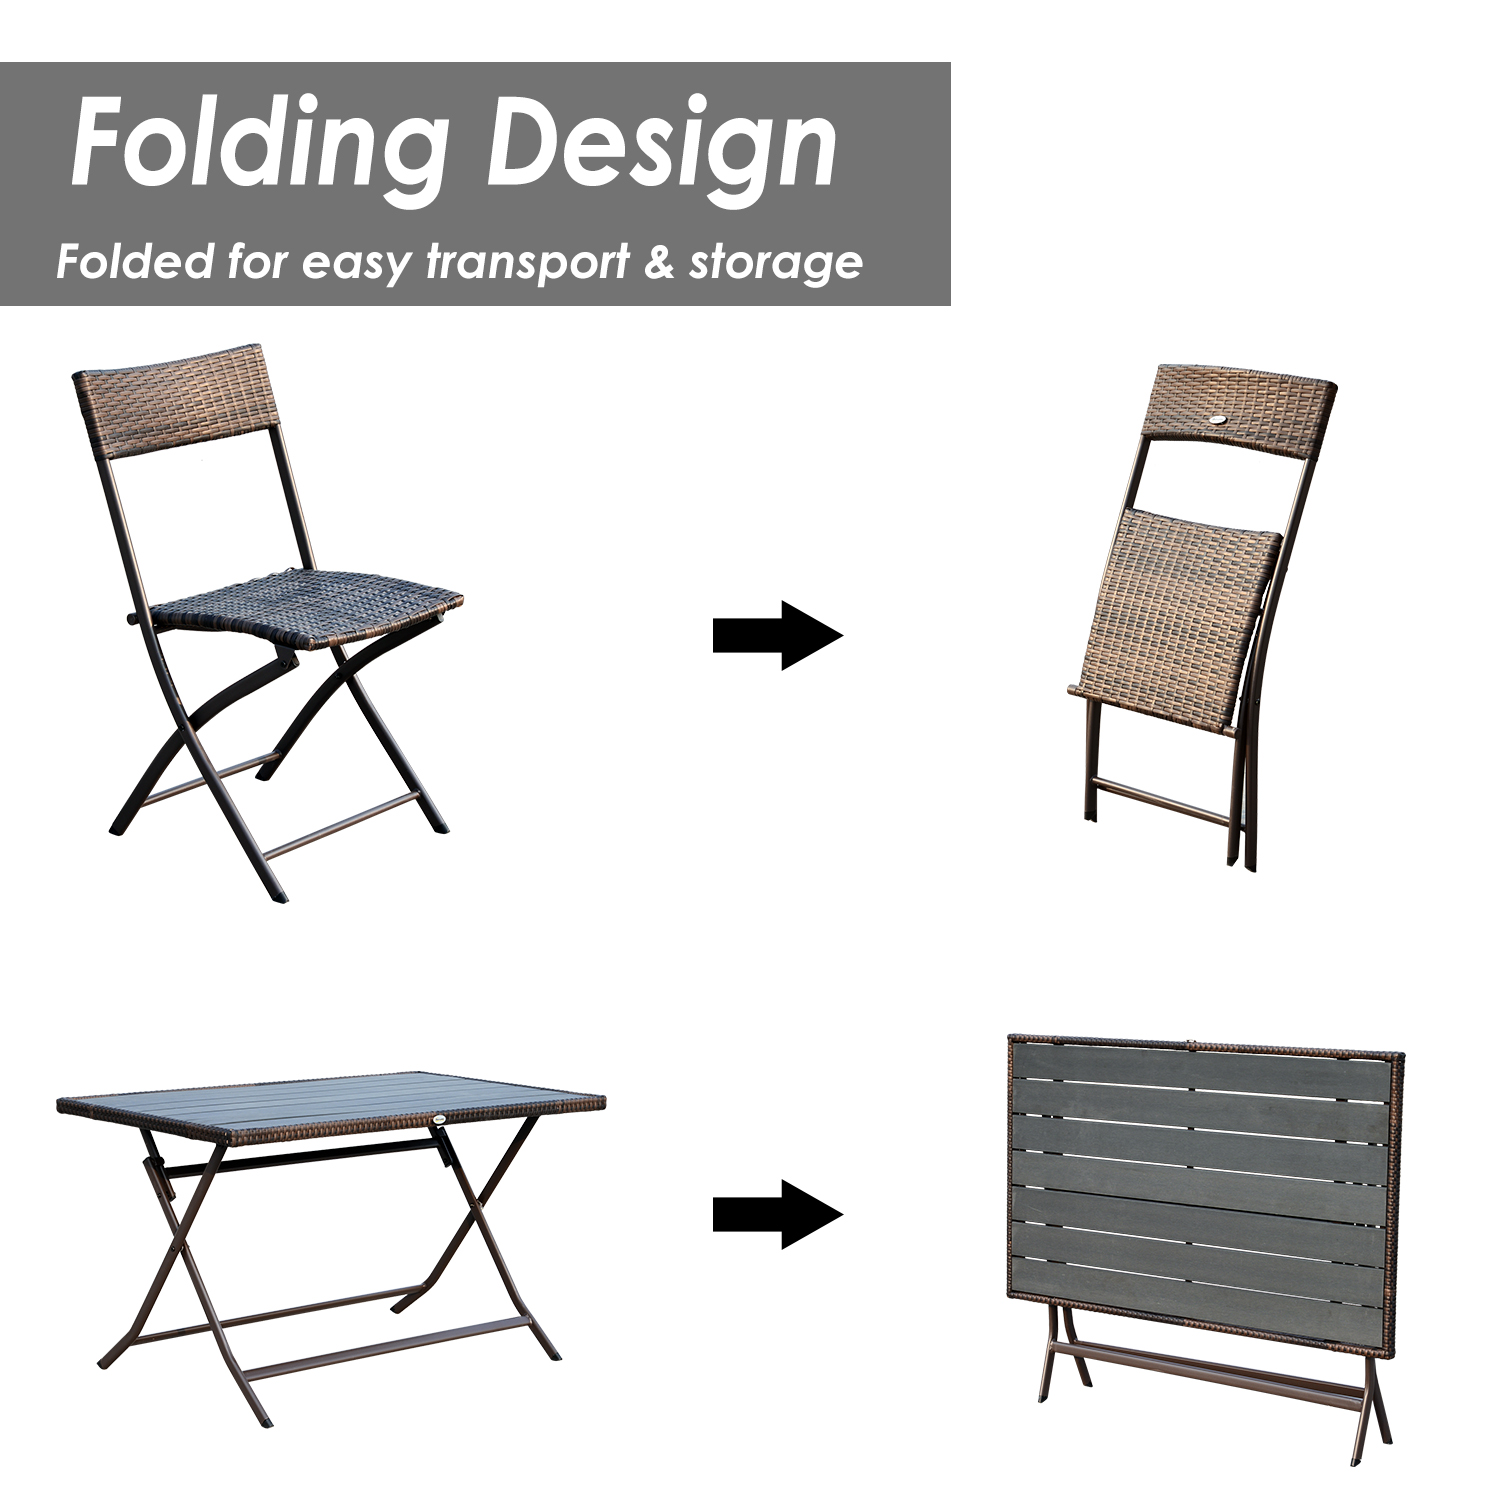 wicker folding chairs. Outsunny 7 Piece Outdoor Rattan Wicker Dining Table And Chairs Set Folding